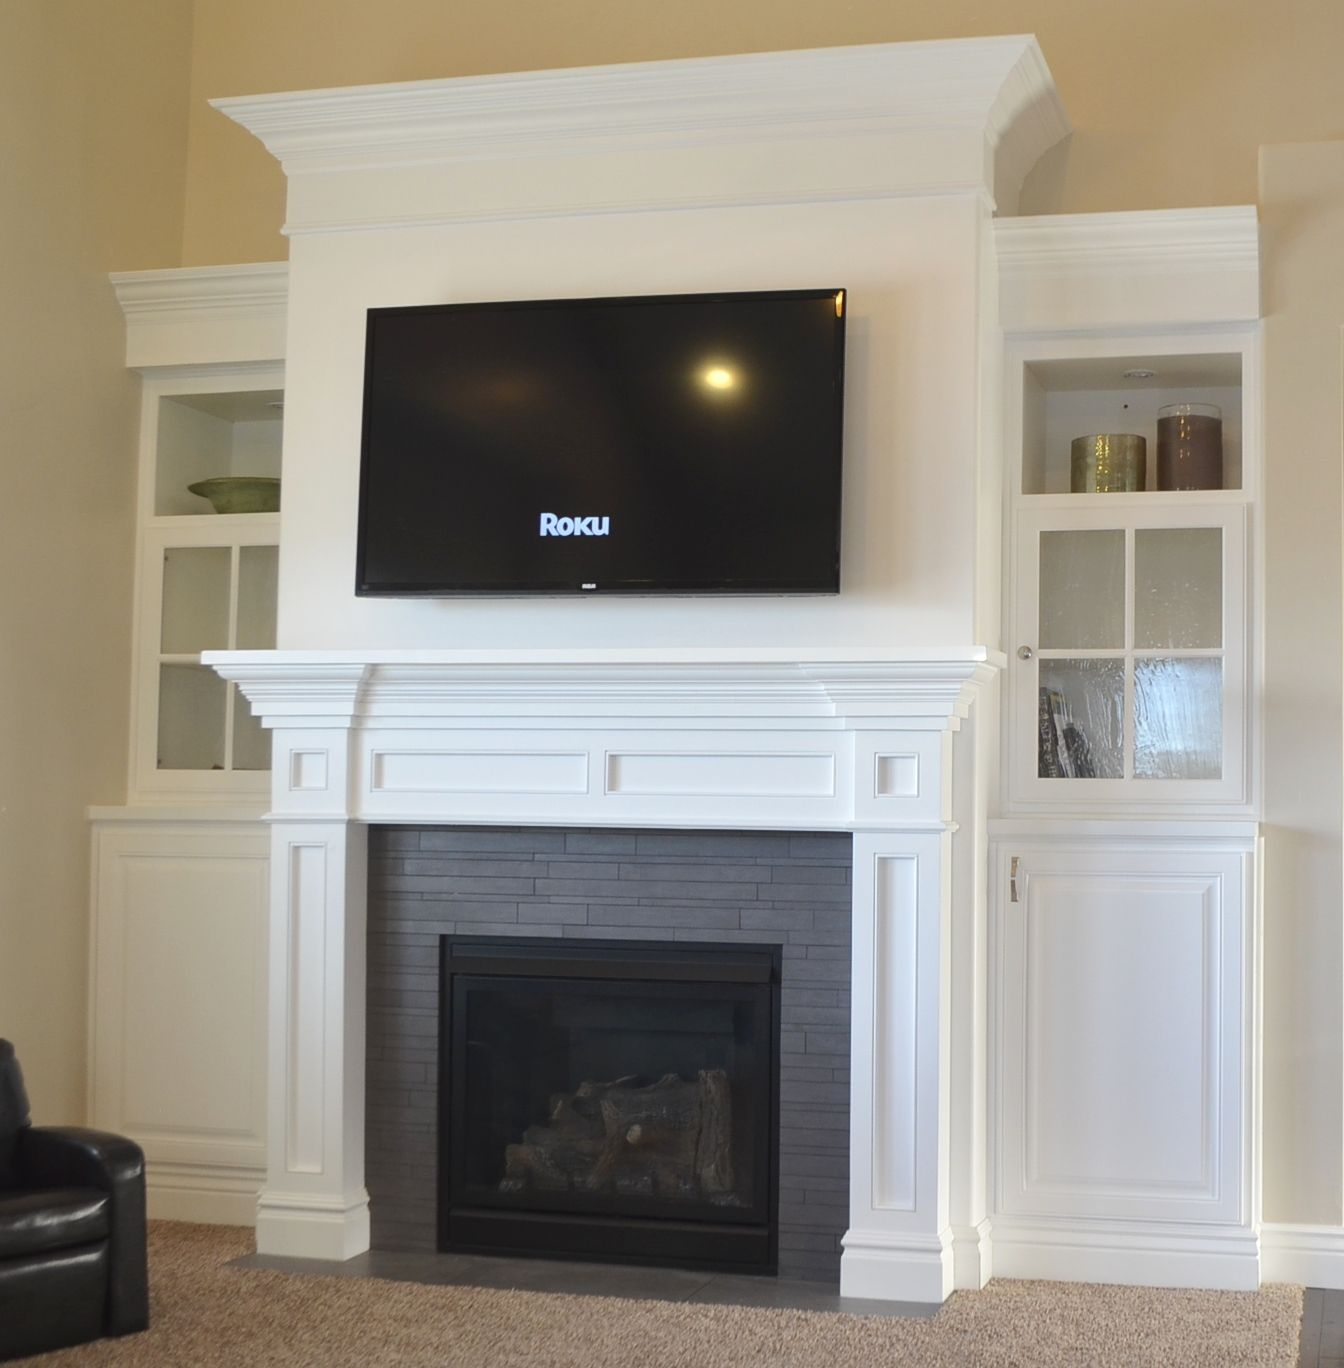 How to Build Your Own Fireplace Mantel Home fireplace